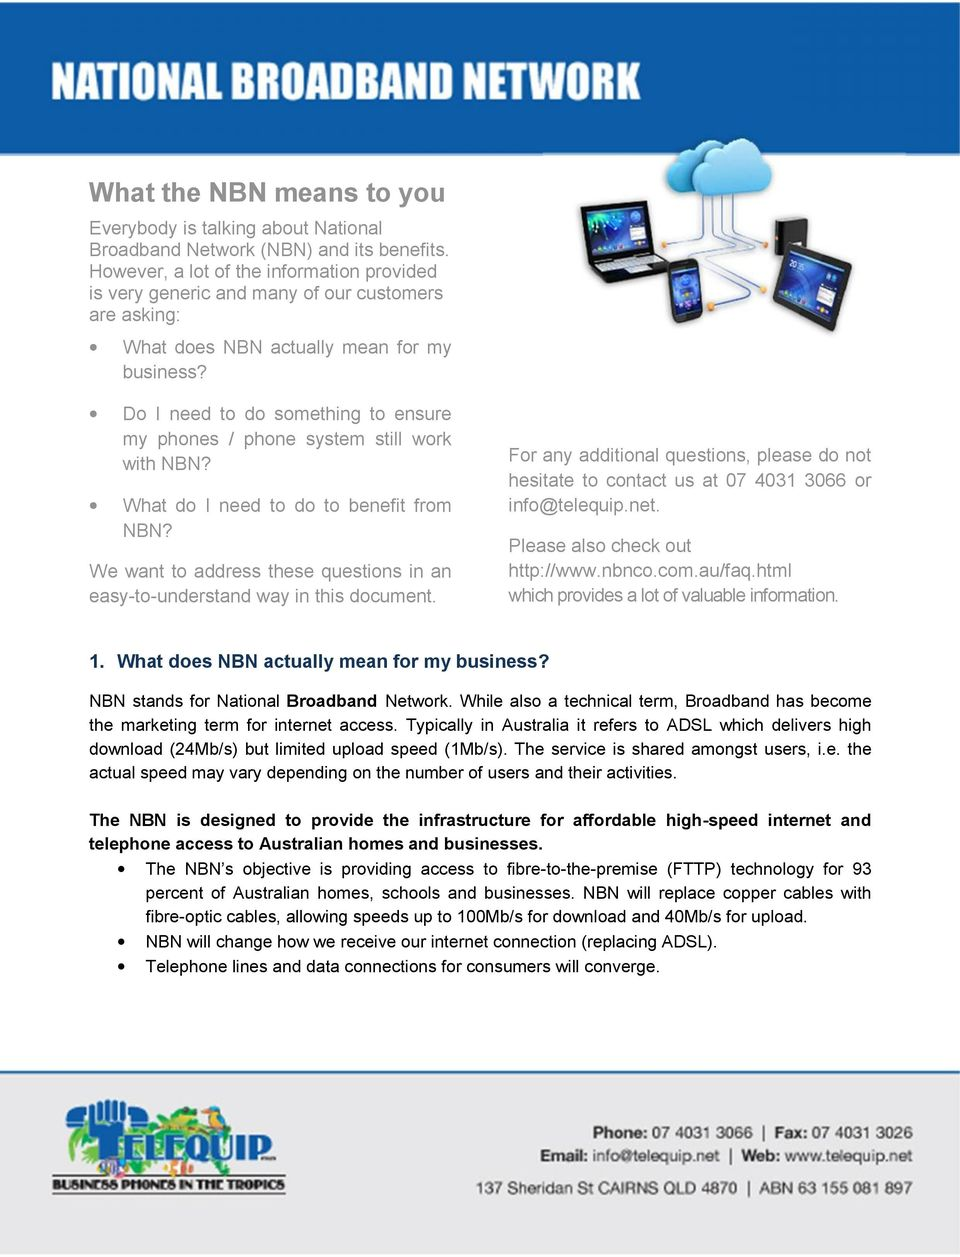 Do I need to do something to ensure my phones / phone system still work with NBN? What do I need to do to benefit from NBN?